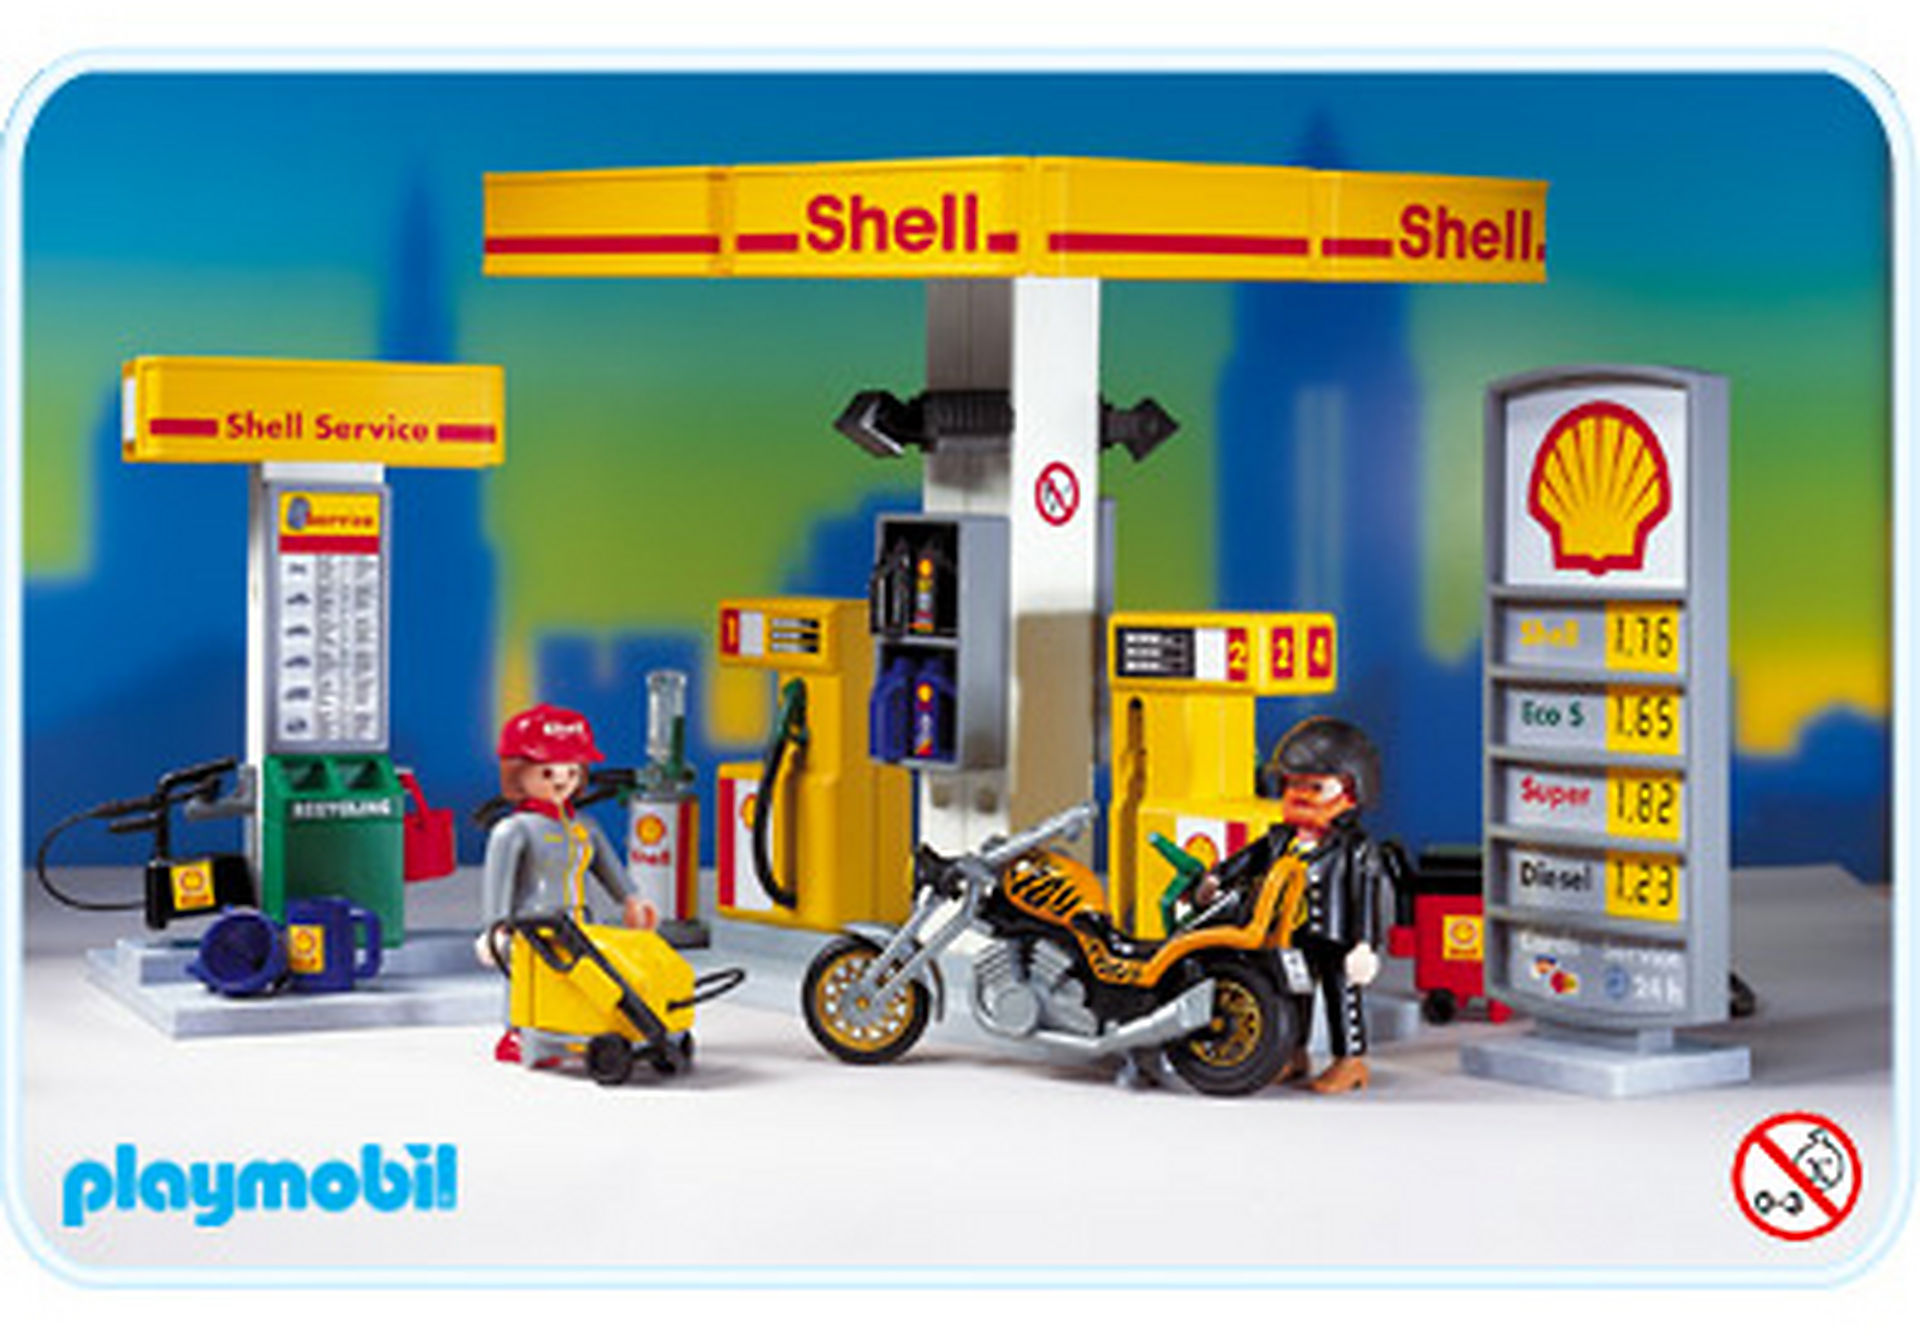 http://media.playmobil.com/i/playmobil/3014-A_product_detail/Station Service Shell